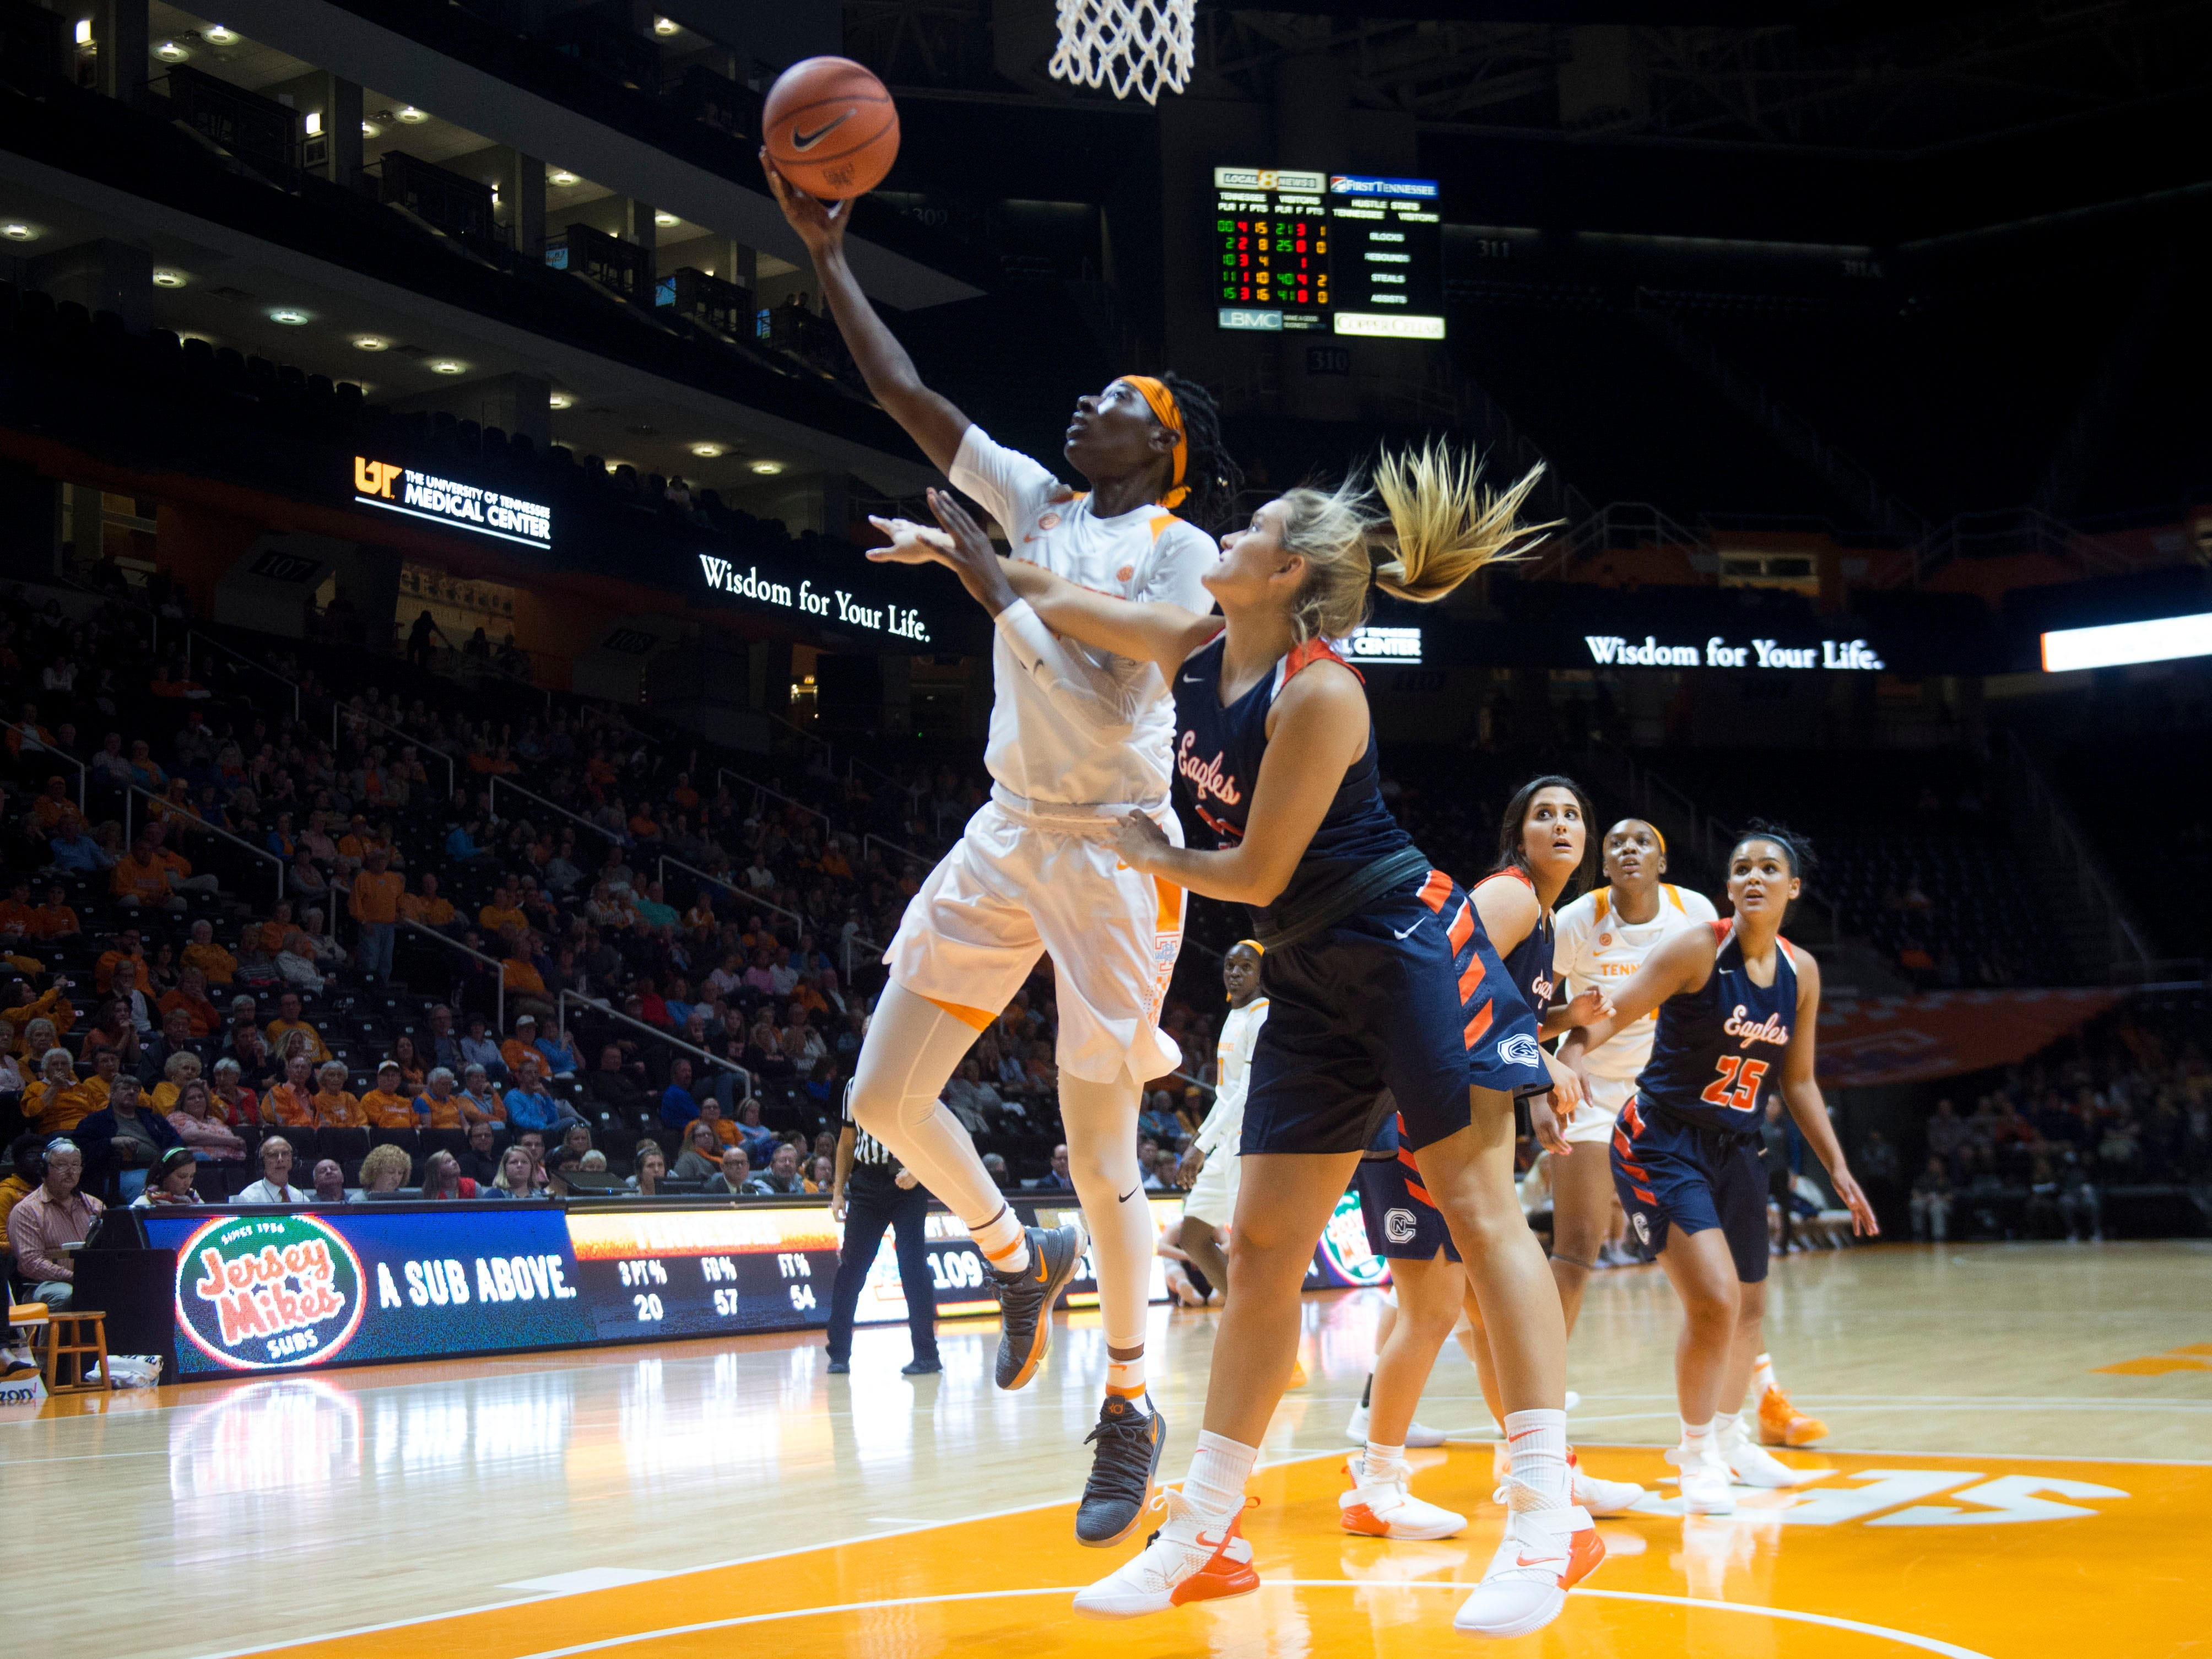 Tennessee's Rennia Davis (0) attempts to score against Carson-Newman's on Monday, November 5, 2018.